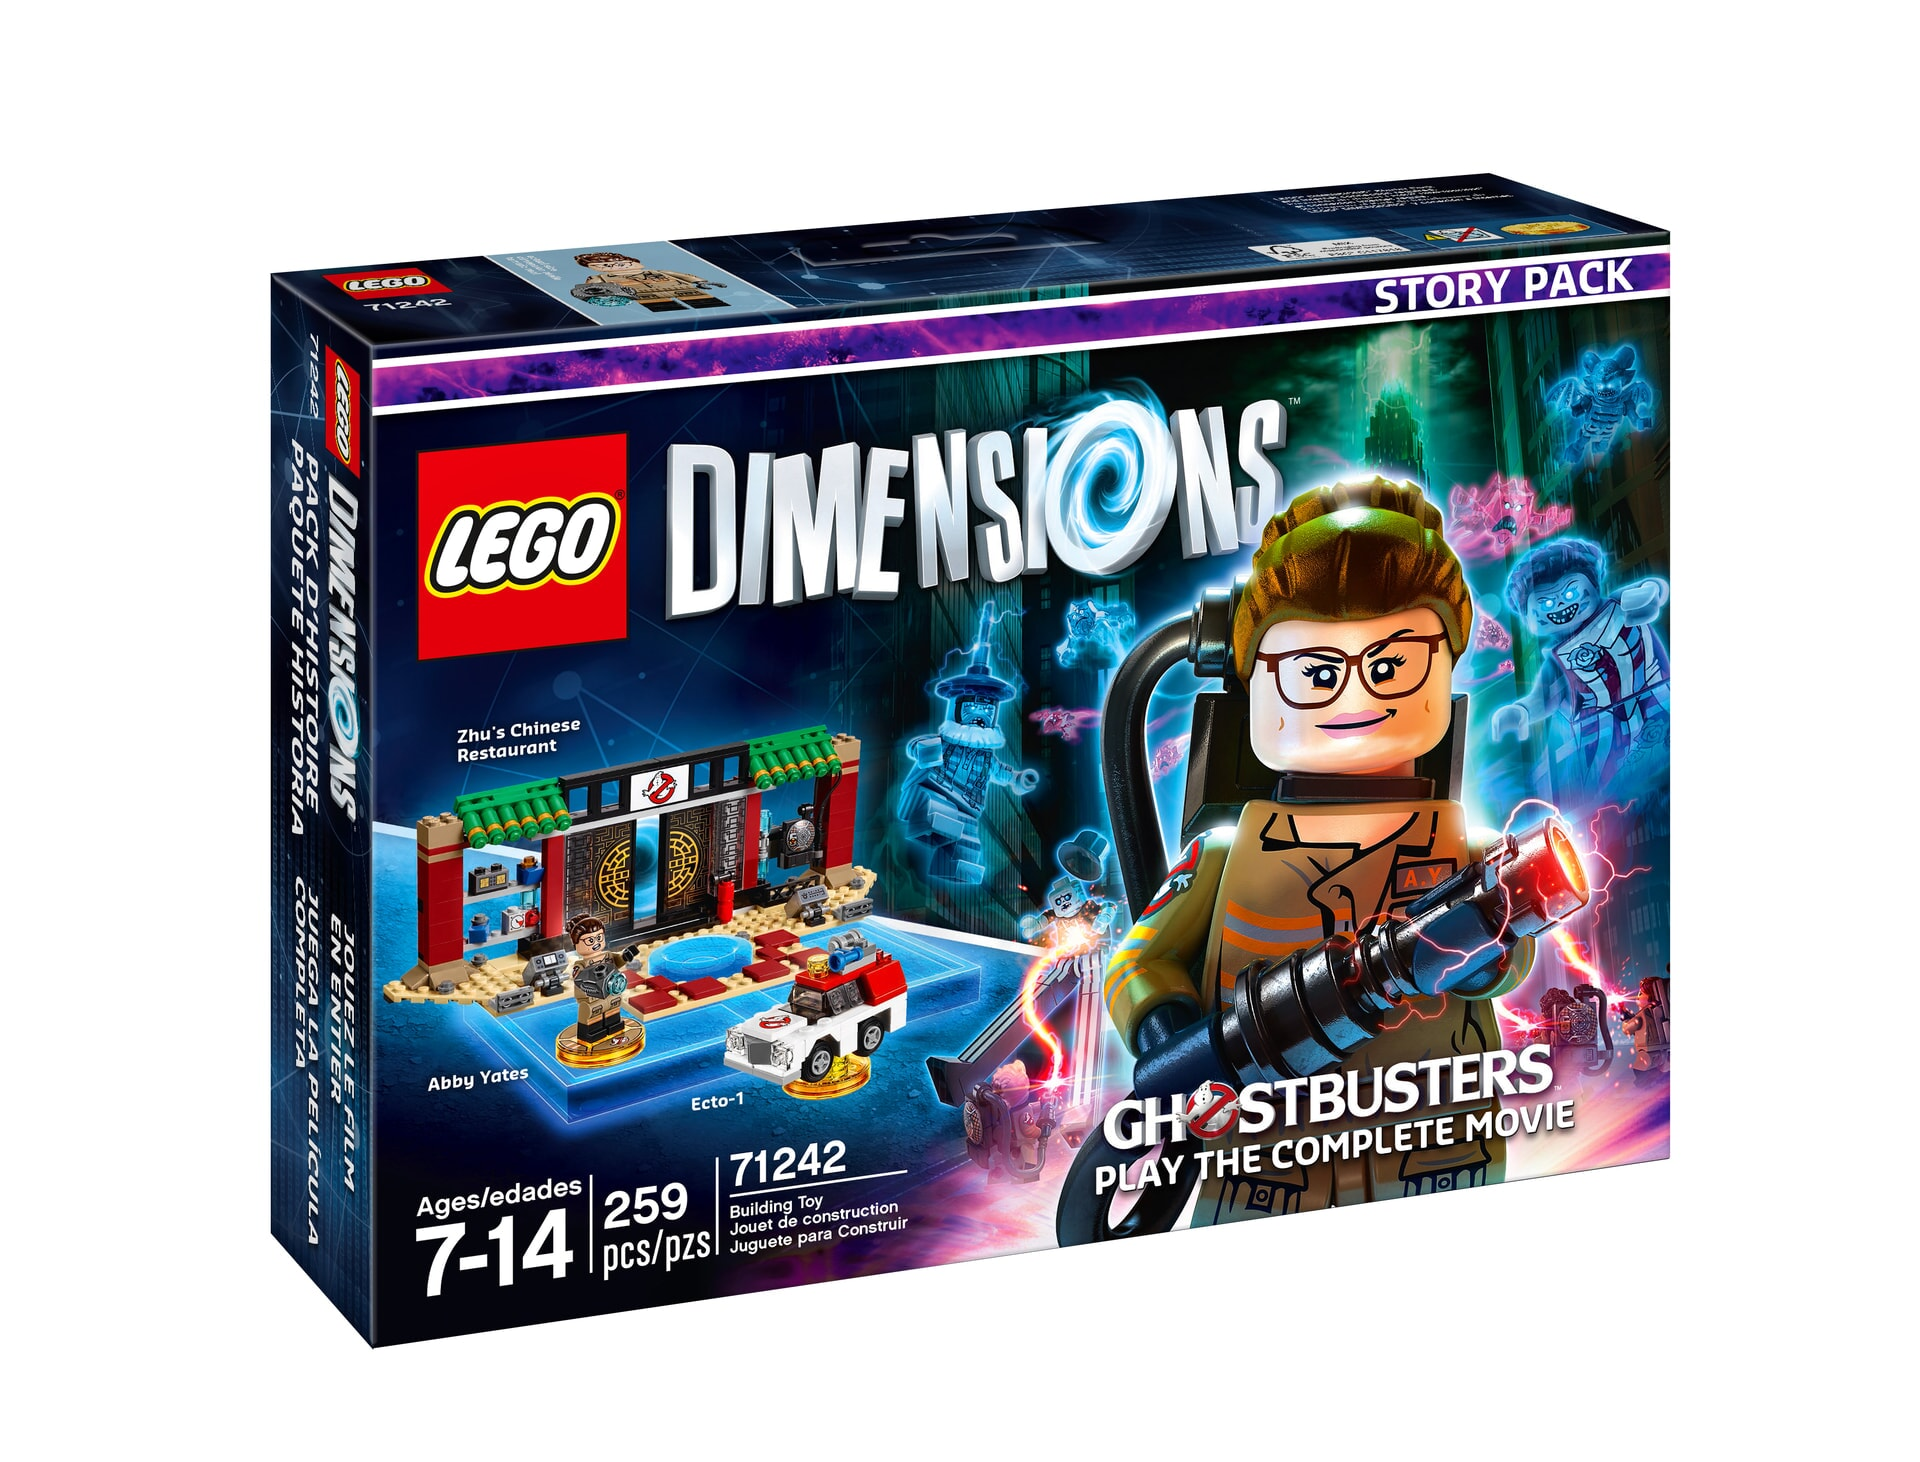 LEGO Dimensions Expansion Pack: Ghostbusters